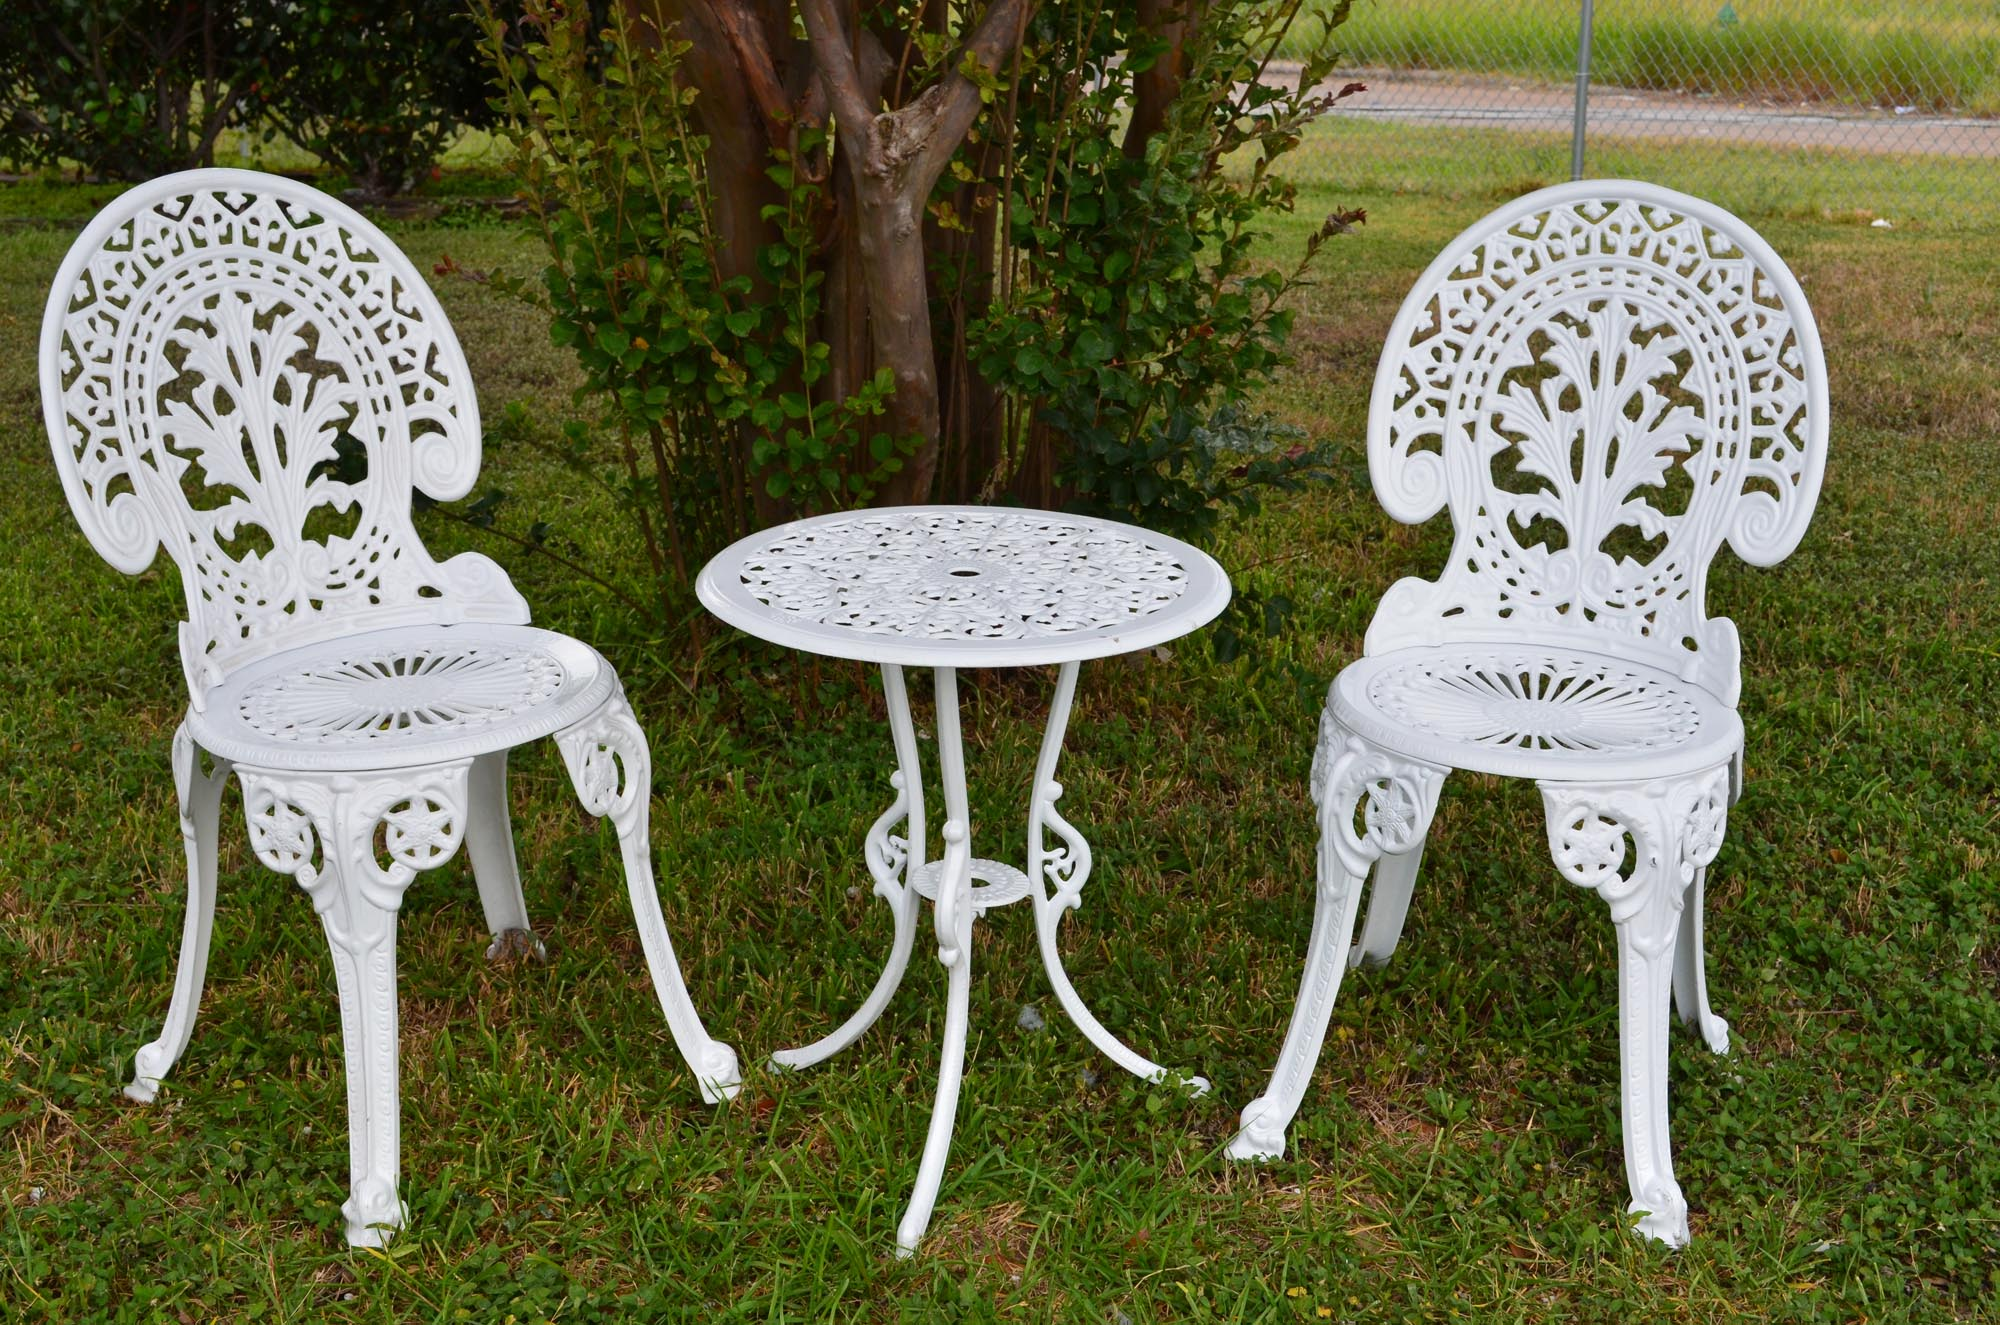 Angel White Garden Bistro Set - Table and Two Chairs for Yard, 3